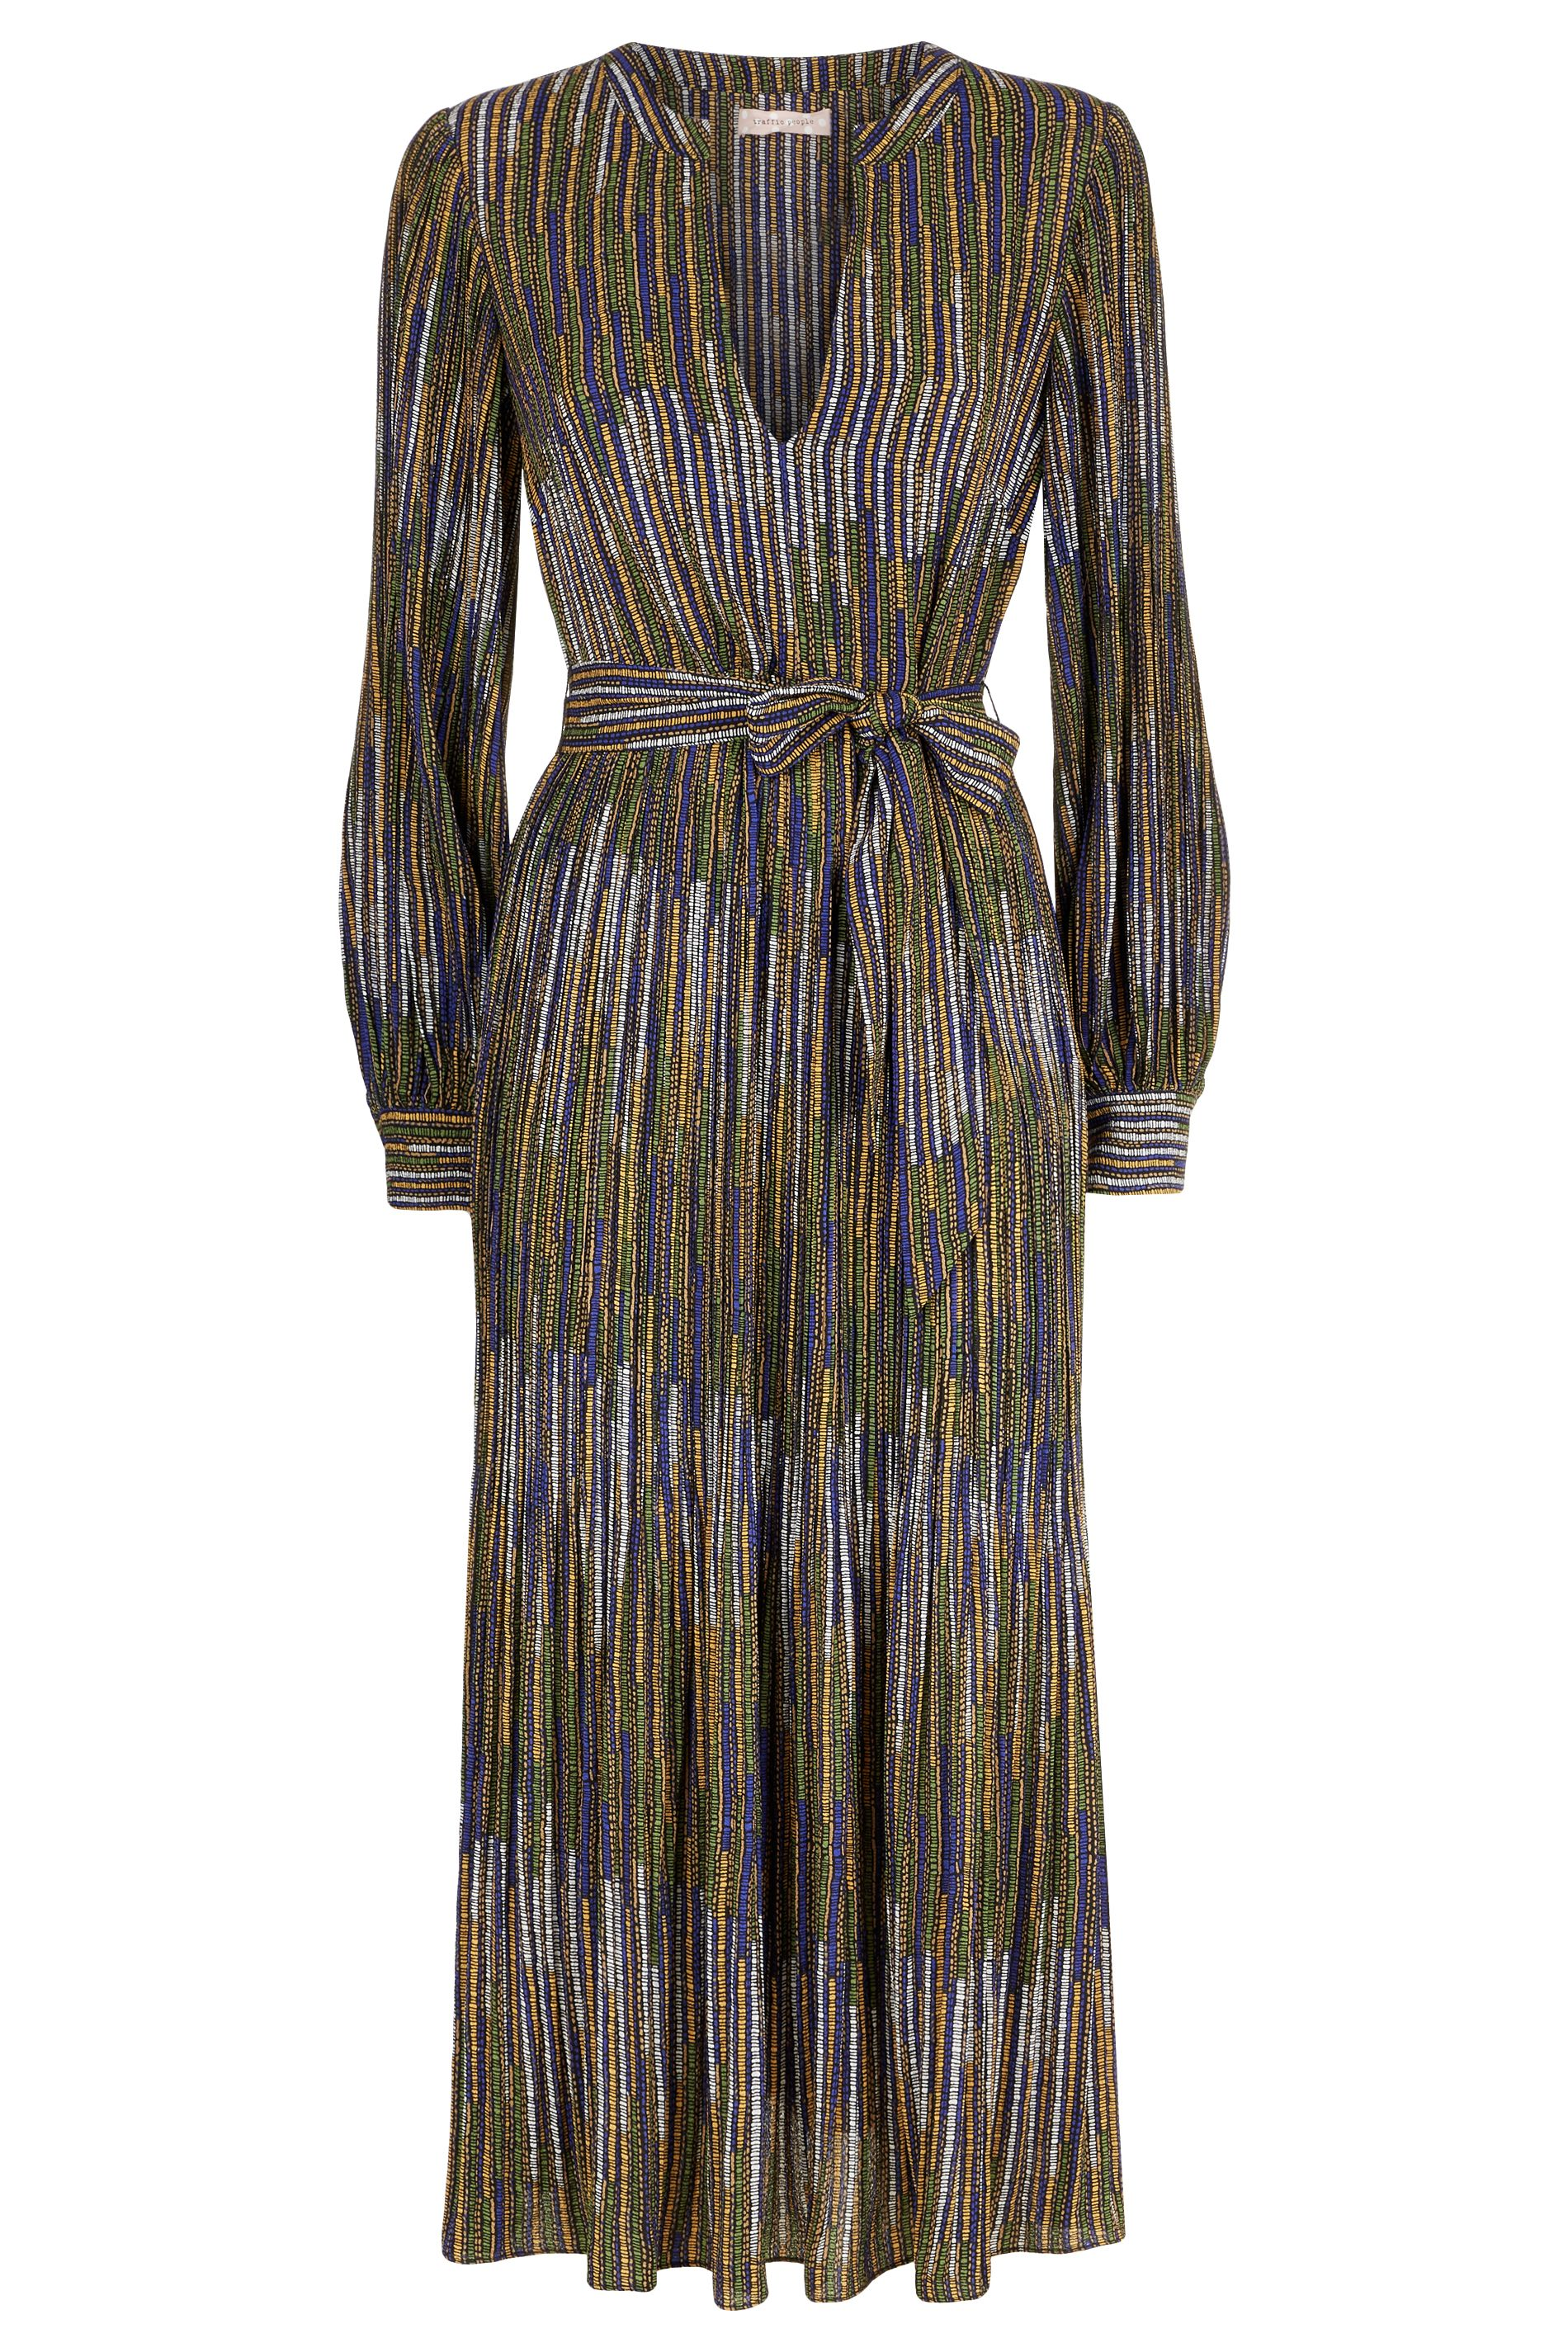 Fallen Printed Pleated Maxi Dress in Mustard and Blue